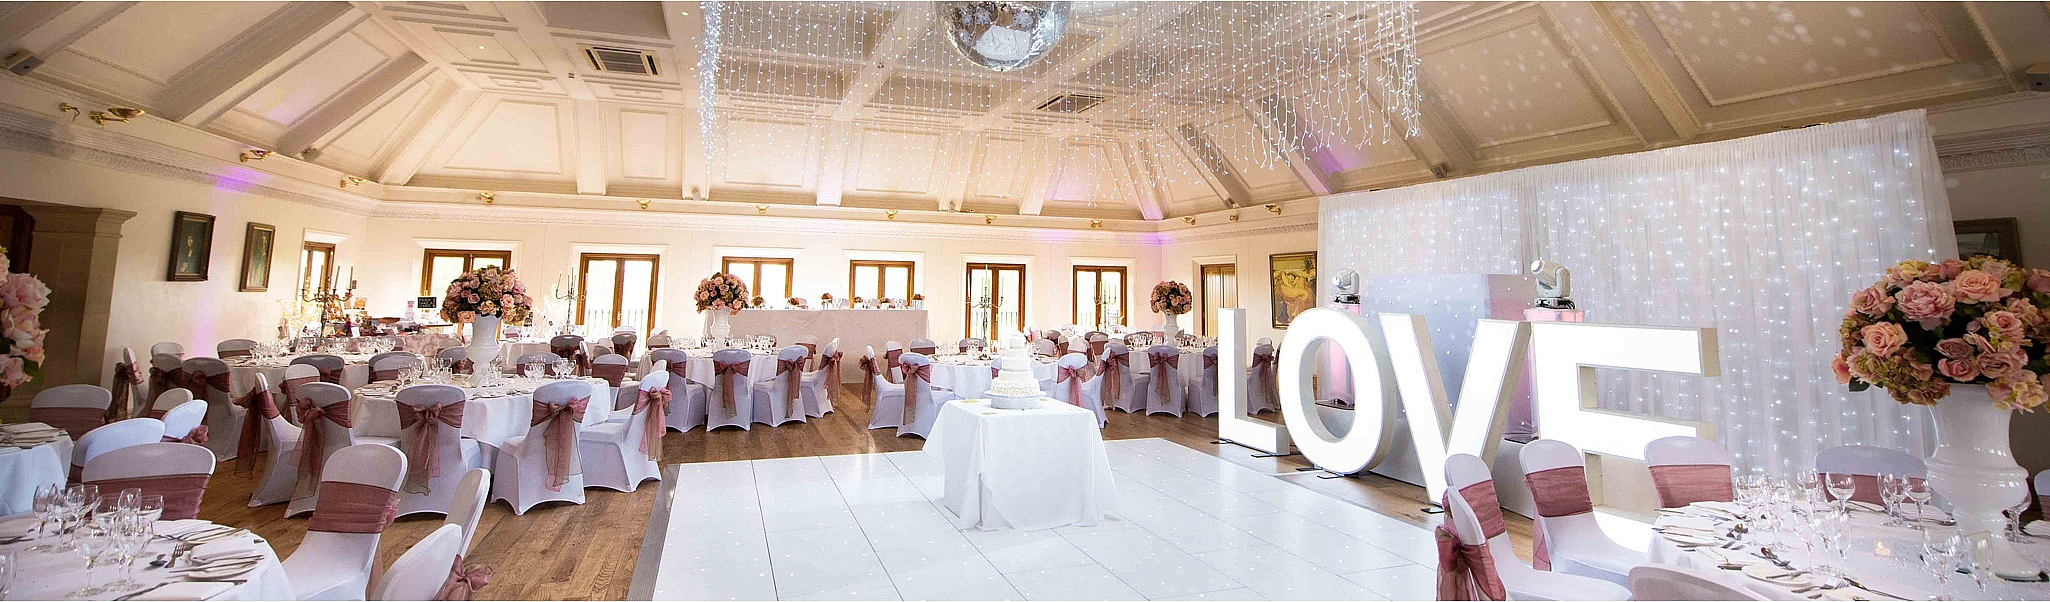 Stock Brook Country Club Wedding Venue Billericay